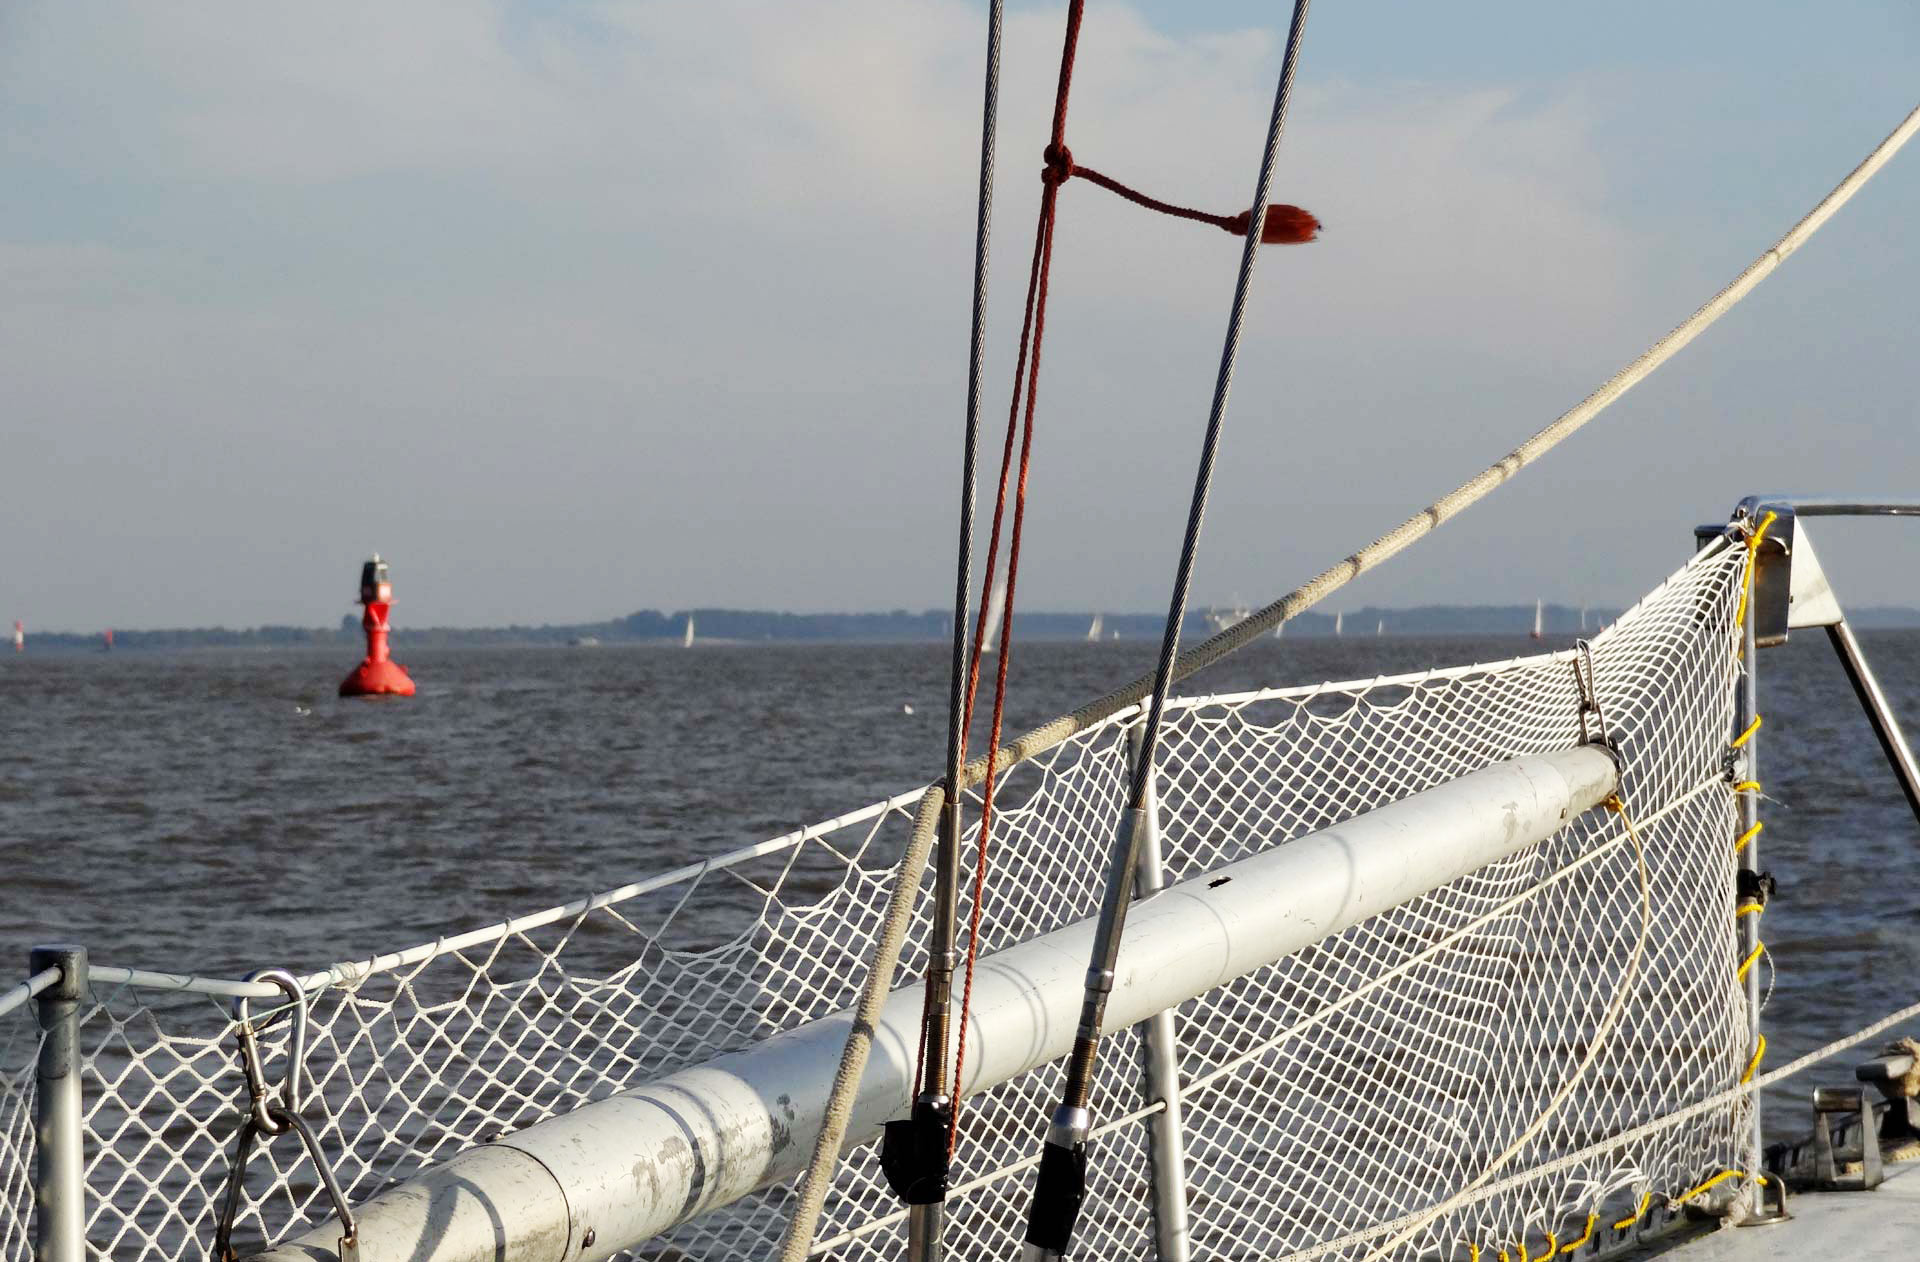 Keeping the red buoys right on our port side.